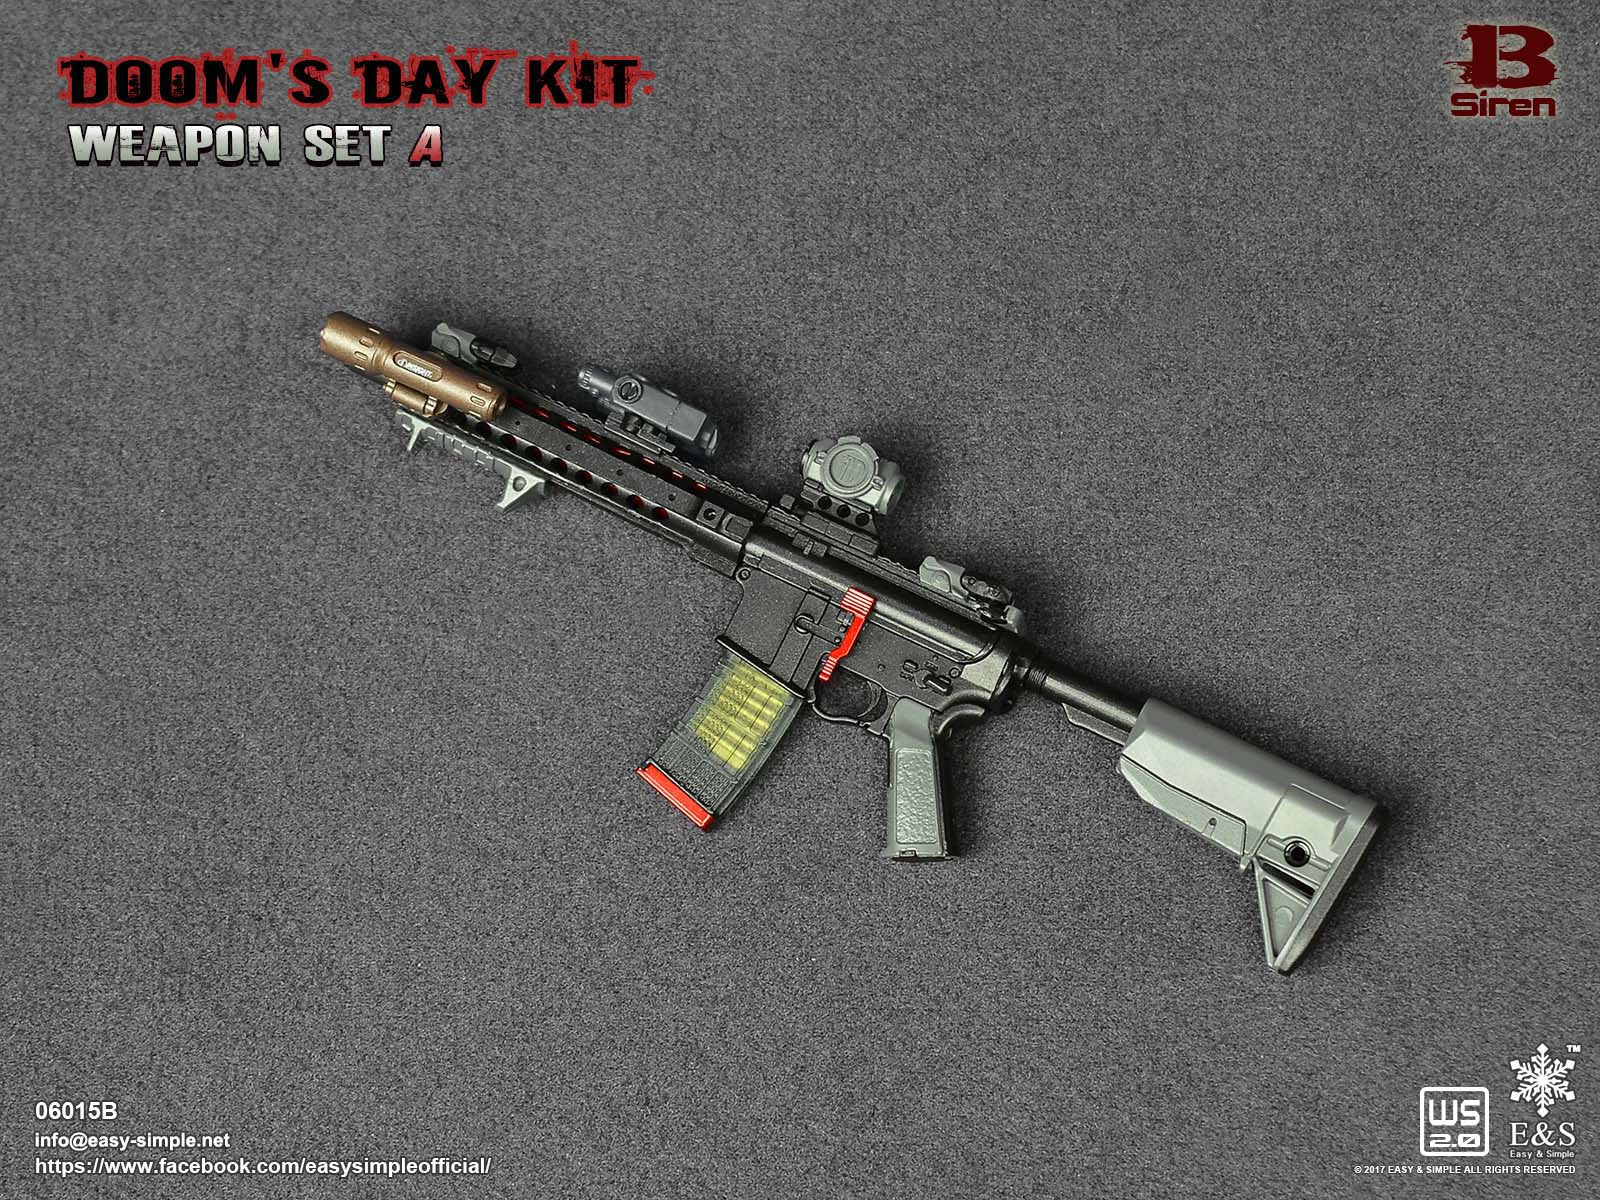 PREORDER E&S Doom's Day Kit Weapon Set SIREN Rifle Mint in Box